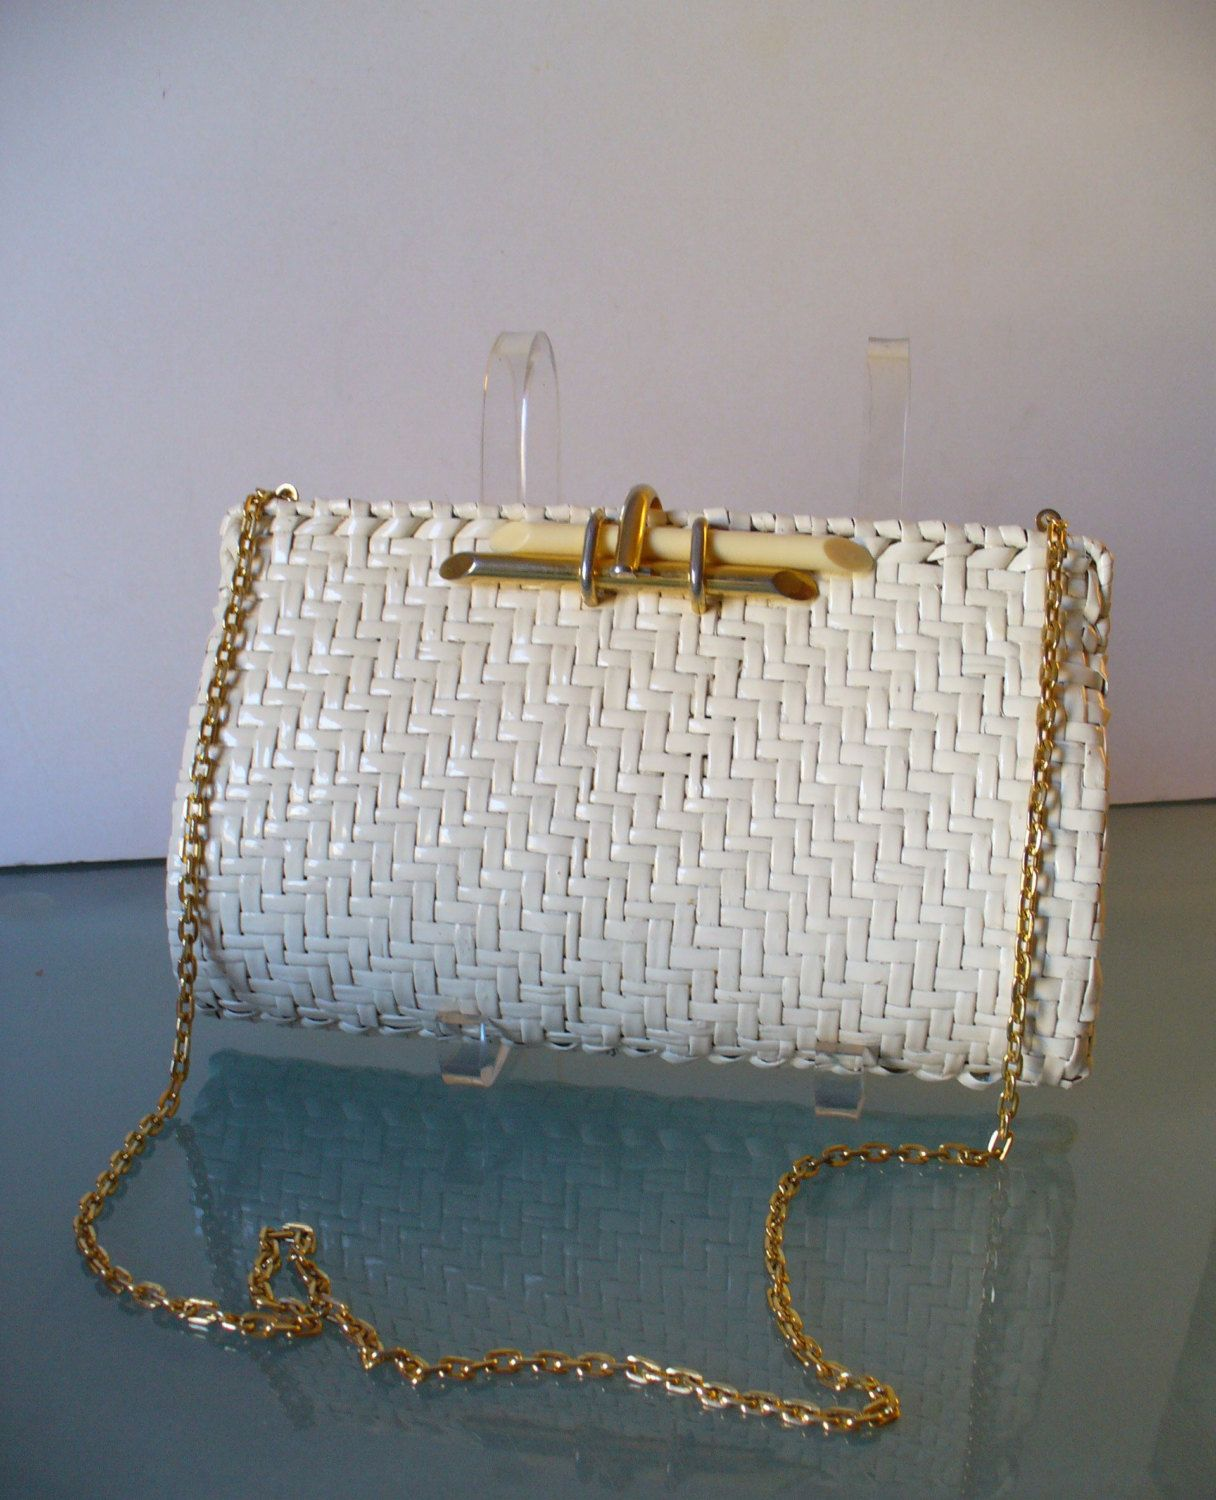 d891ceb8d37 Vintage Rodo Cream Wicker Clutch Bag Made in Italy | Vintage Summer ...